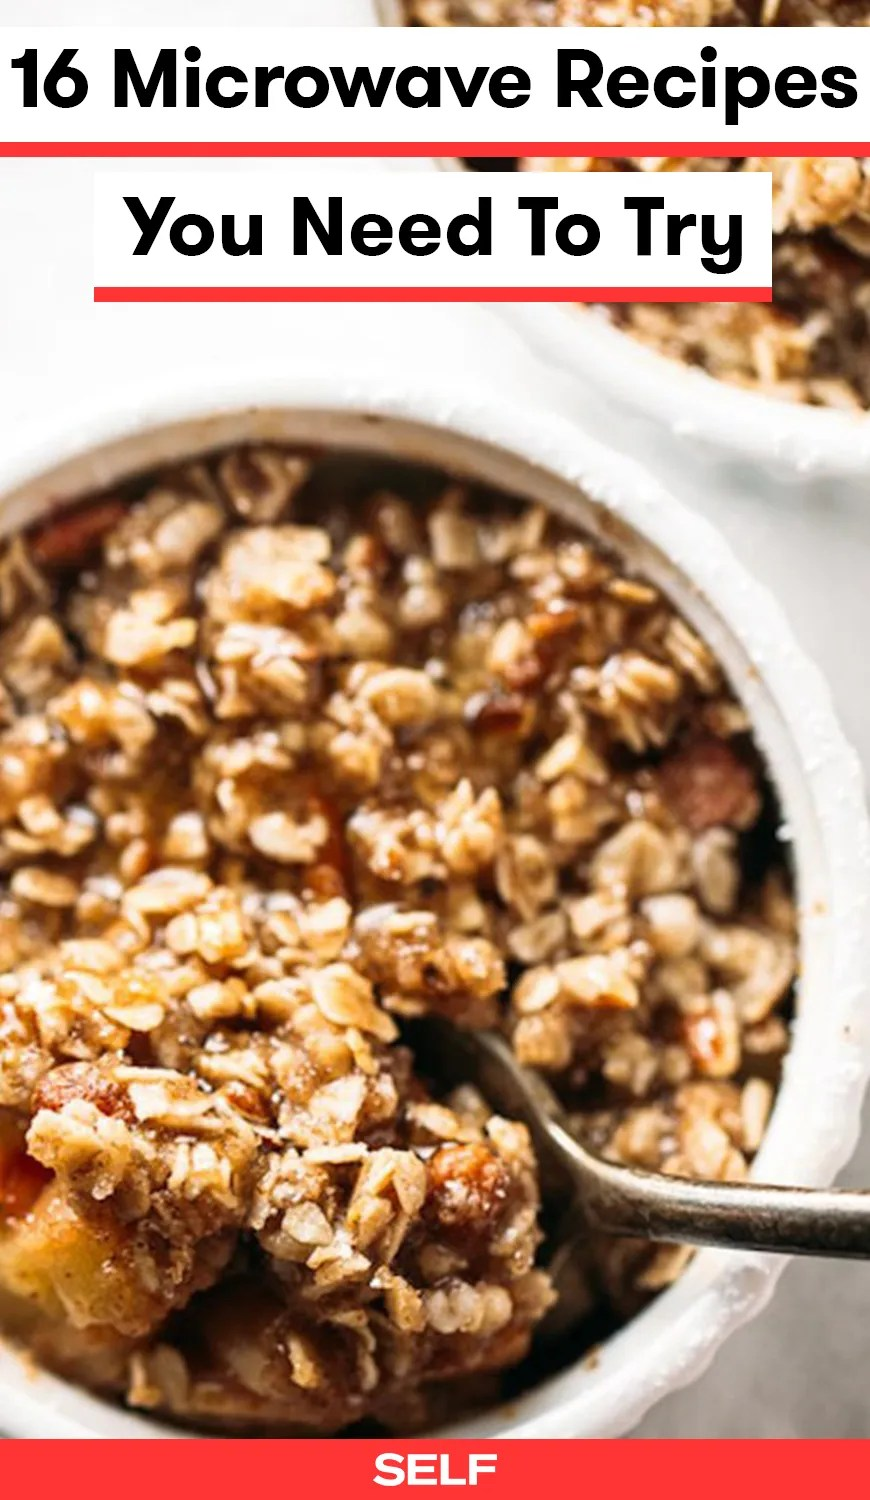 16 healthy microwave recipes for